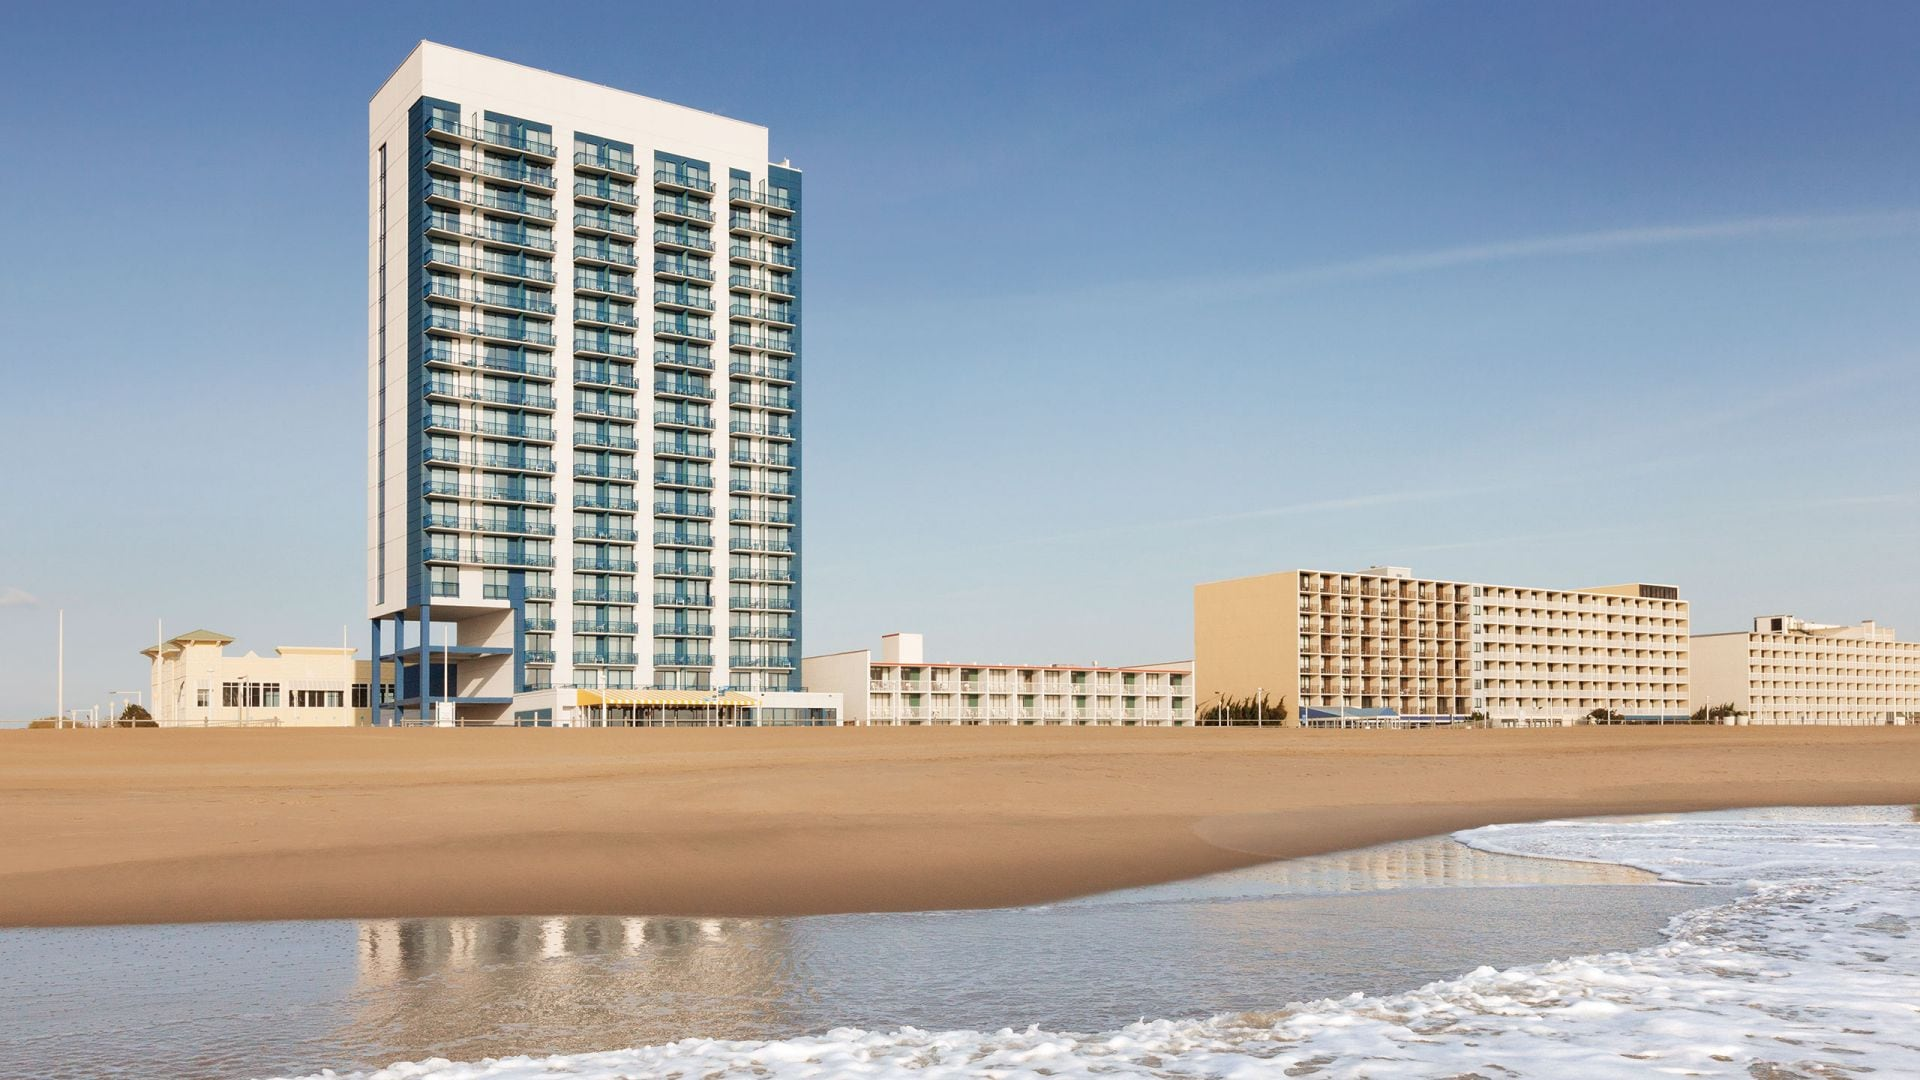 Hyatt House Virginia Beach Exterior